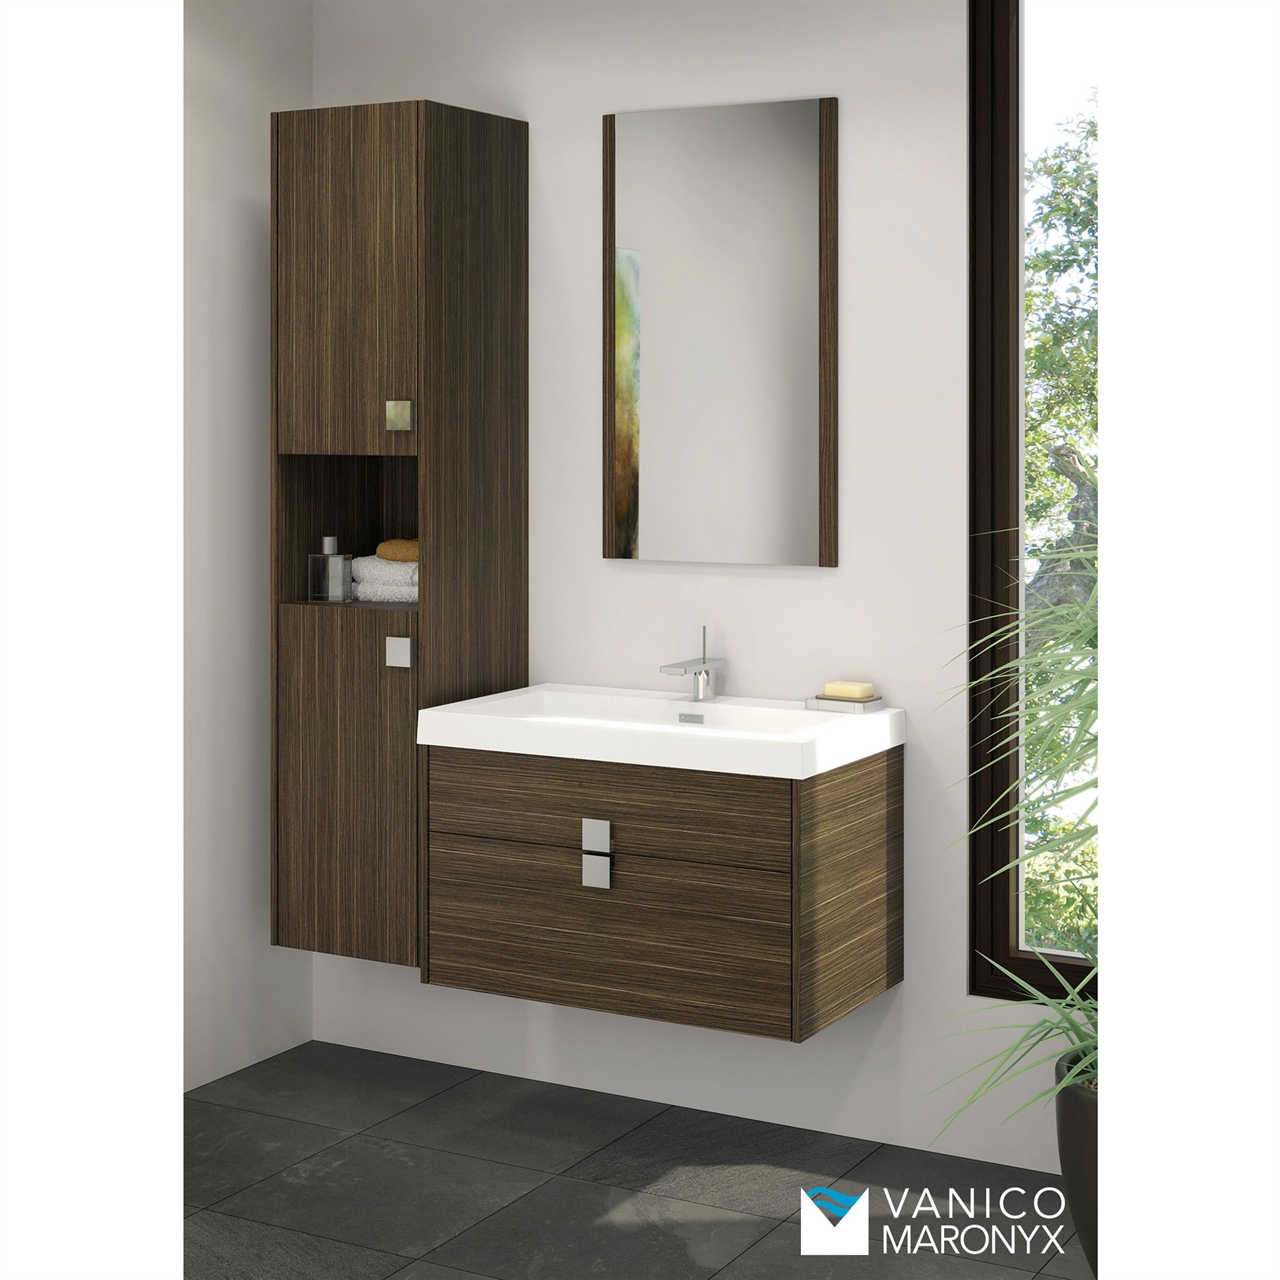 Vanico Maronyx Quadra Vanity Bliss Bath Kitchen